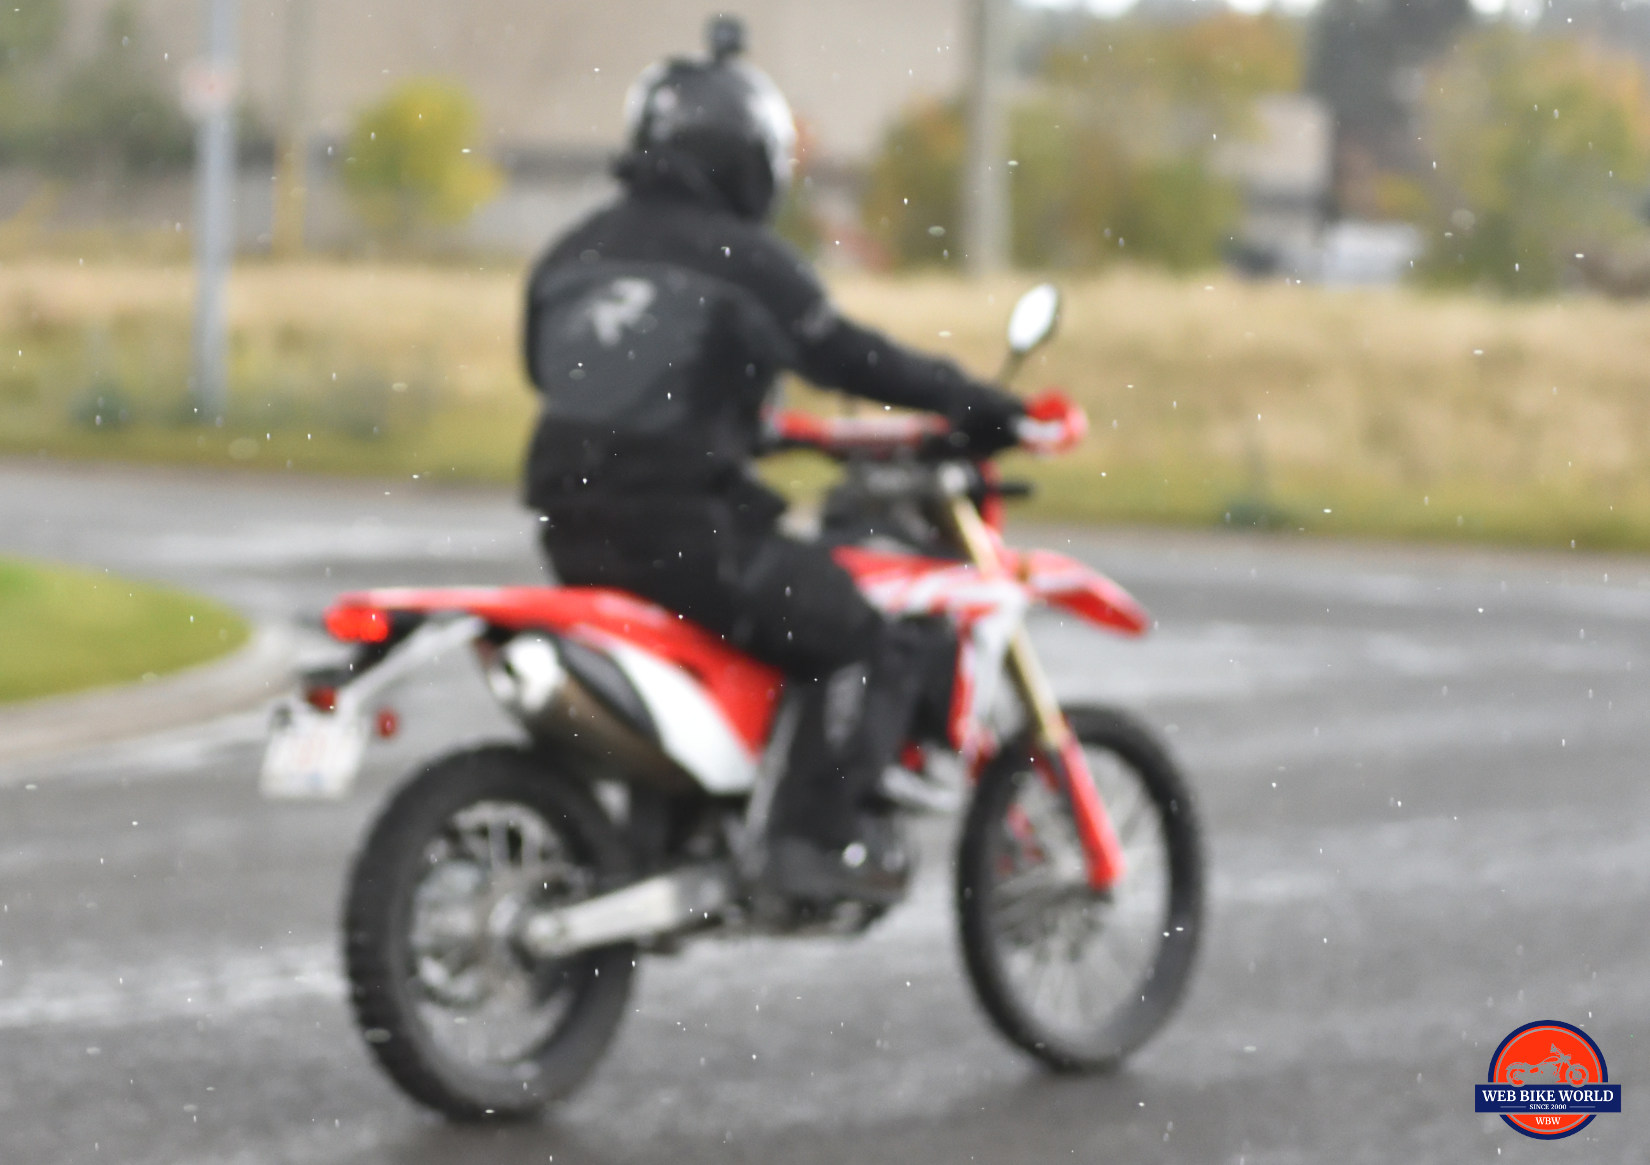 Riding in the rain on a 2019 Honda CRF450L